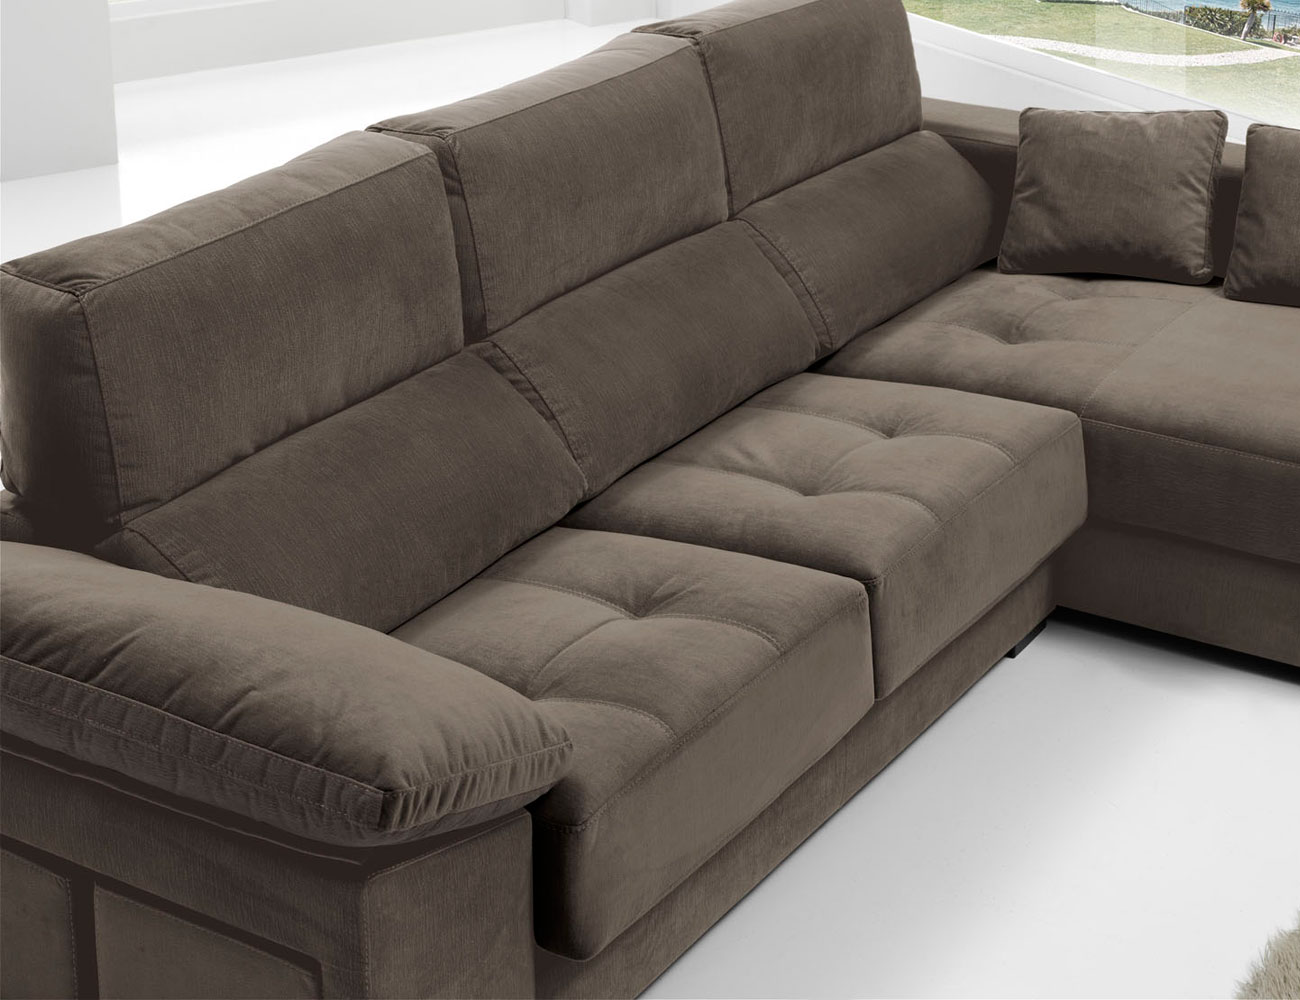 Sofa chaiselongue anti manchas bering pouf 244